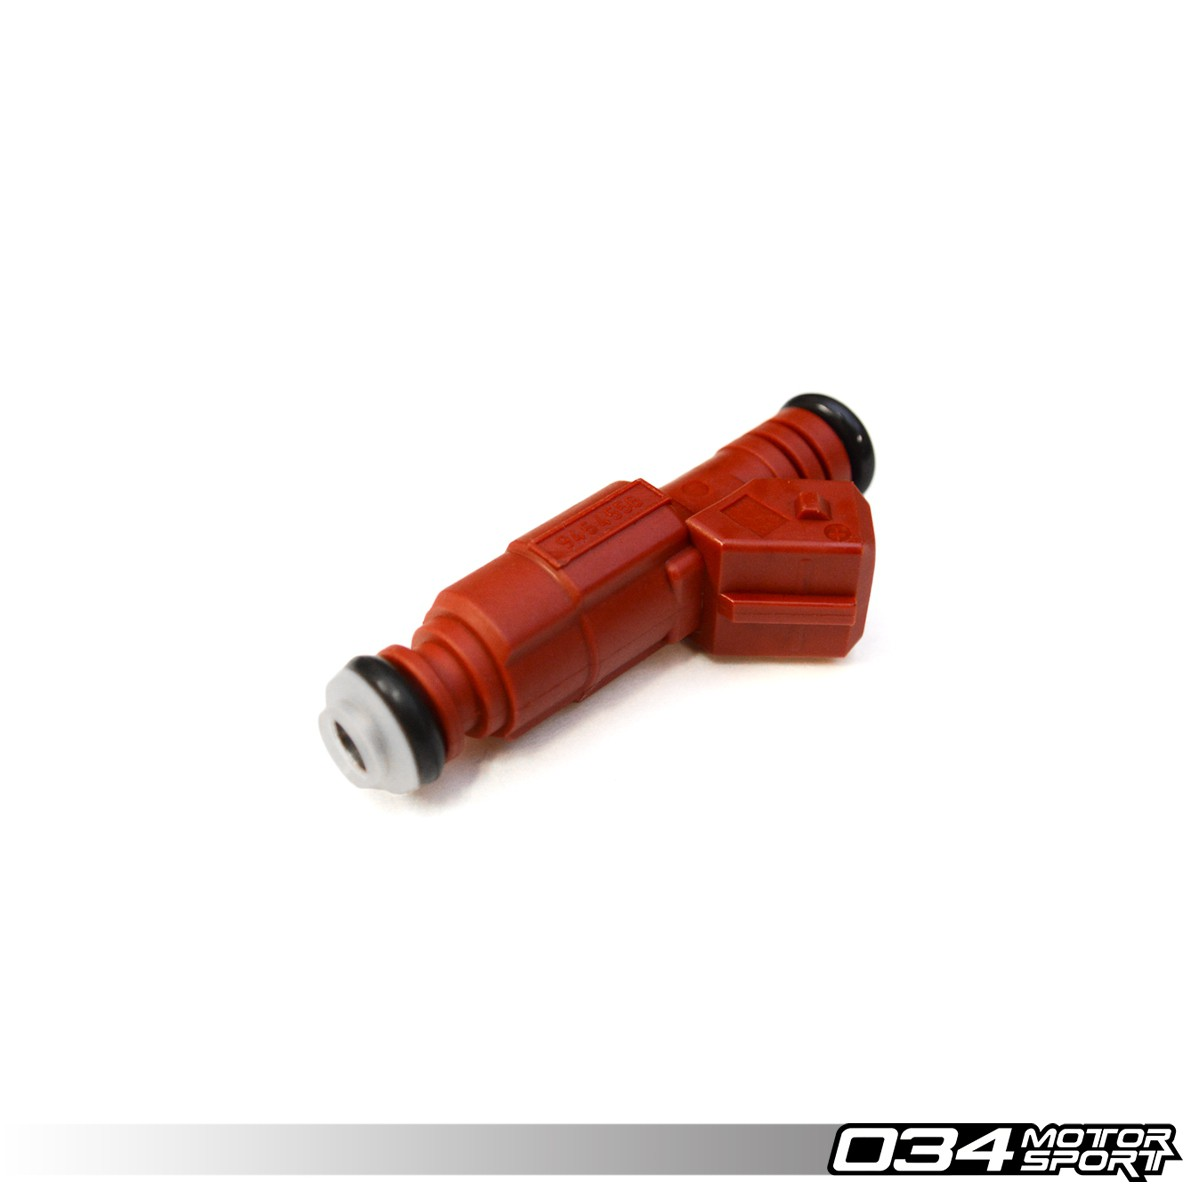 AUDI 7A EFI INJECTOR ADAPTER KIT FOR B3 AUDI 80/90/COUPE QUATTRO I5 20V - IMPROVED